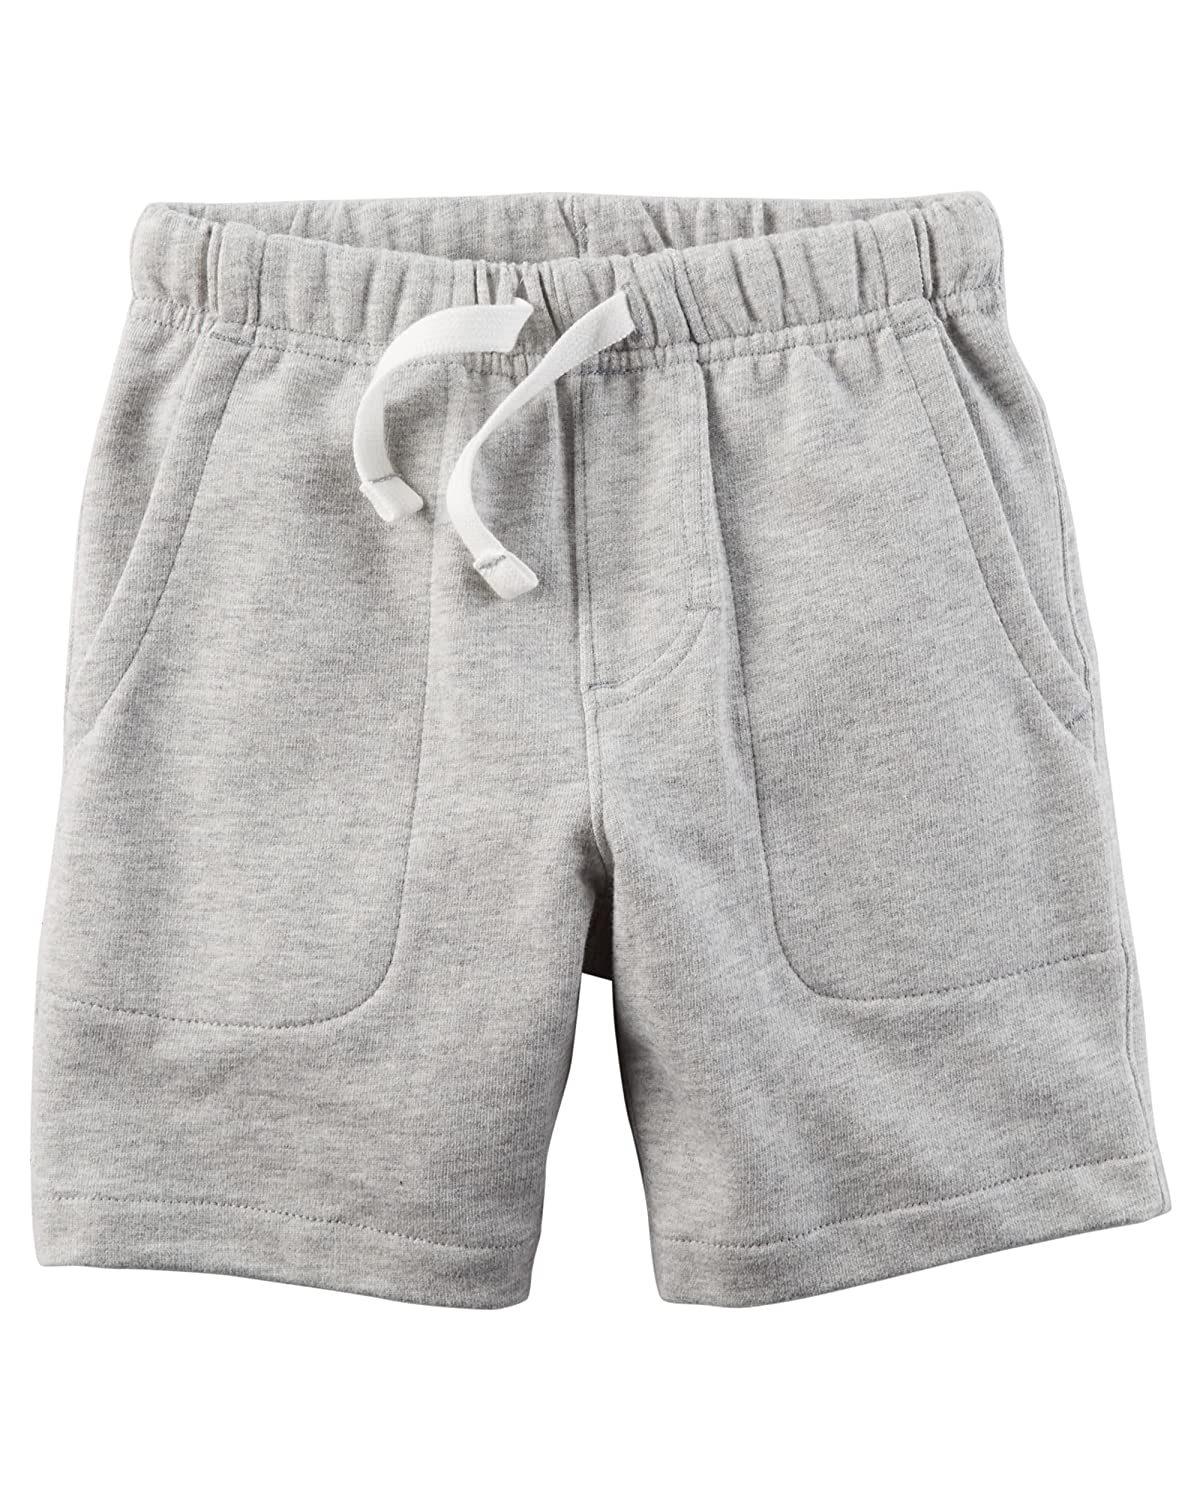 Carter's Boys' French Terry Shorts Carter's